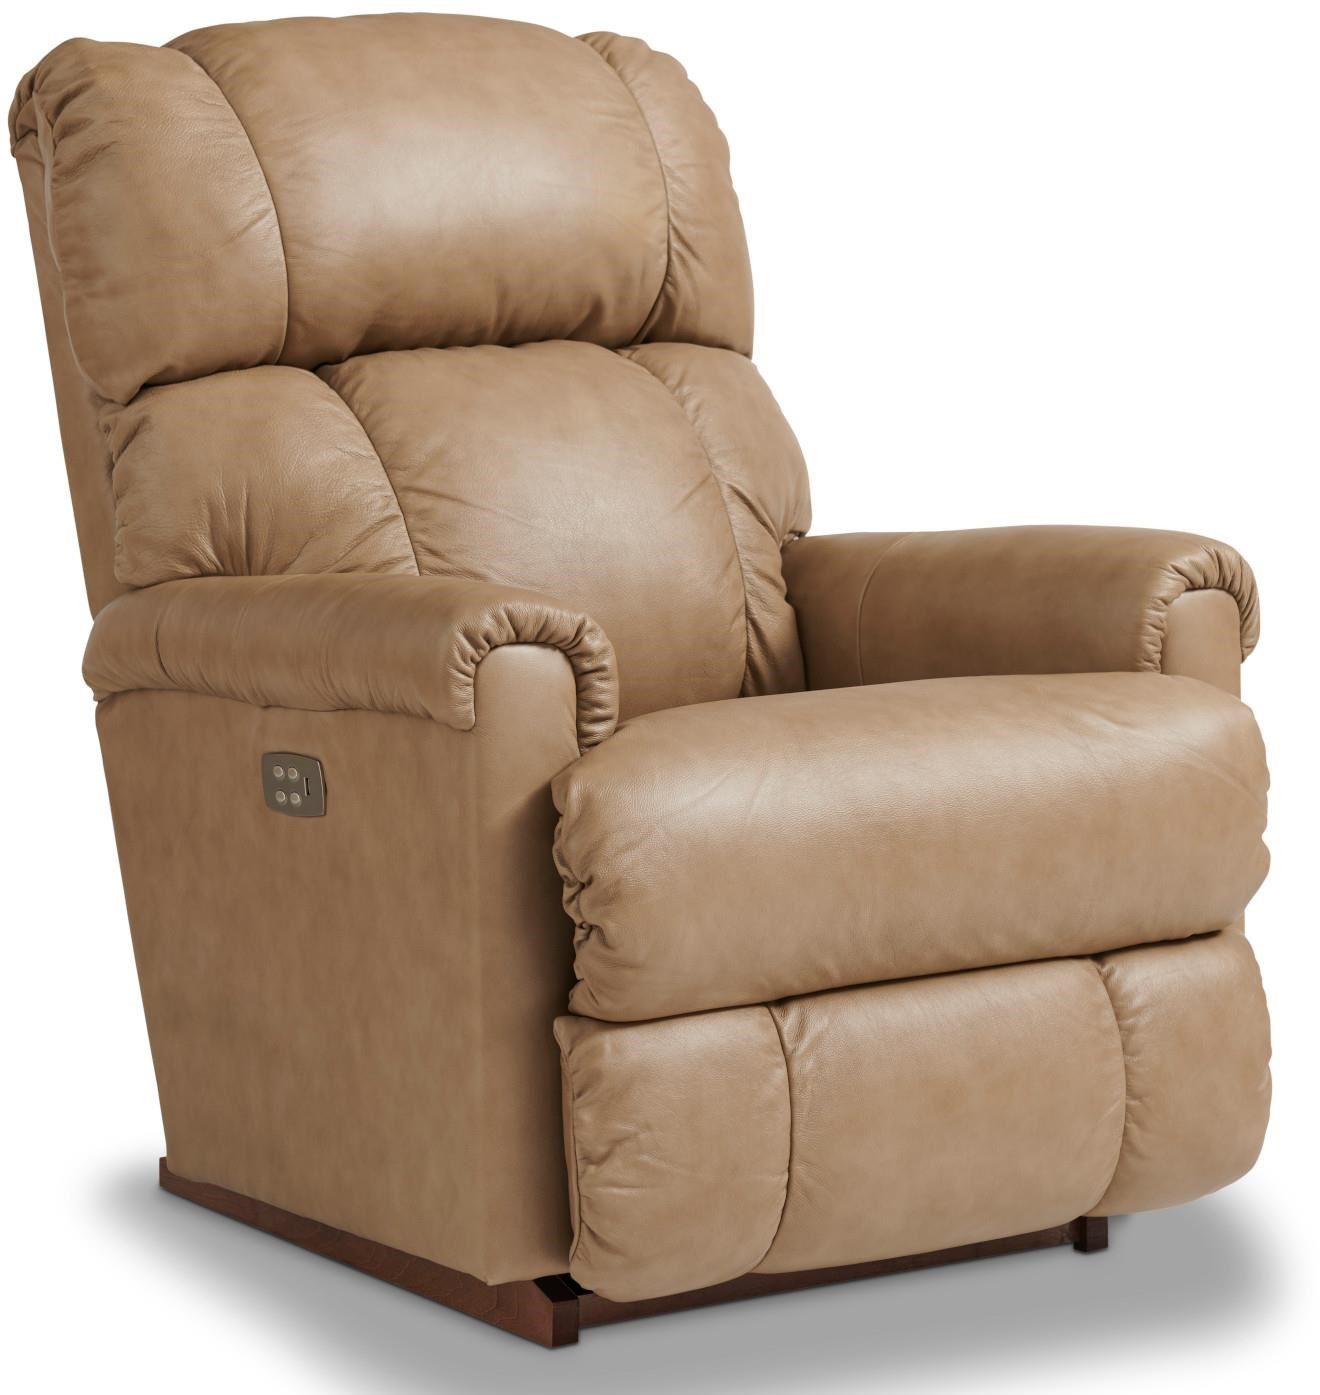 Pinnacle Leather Power Recliner by La-Z-Boy at Bennett's Furniture and Mattresses